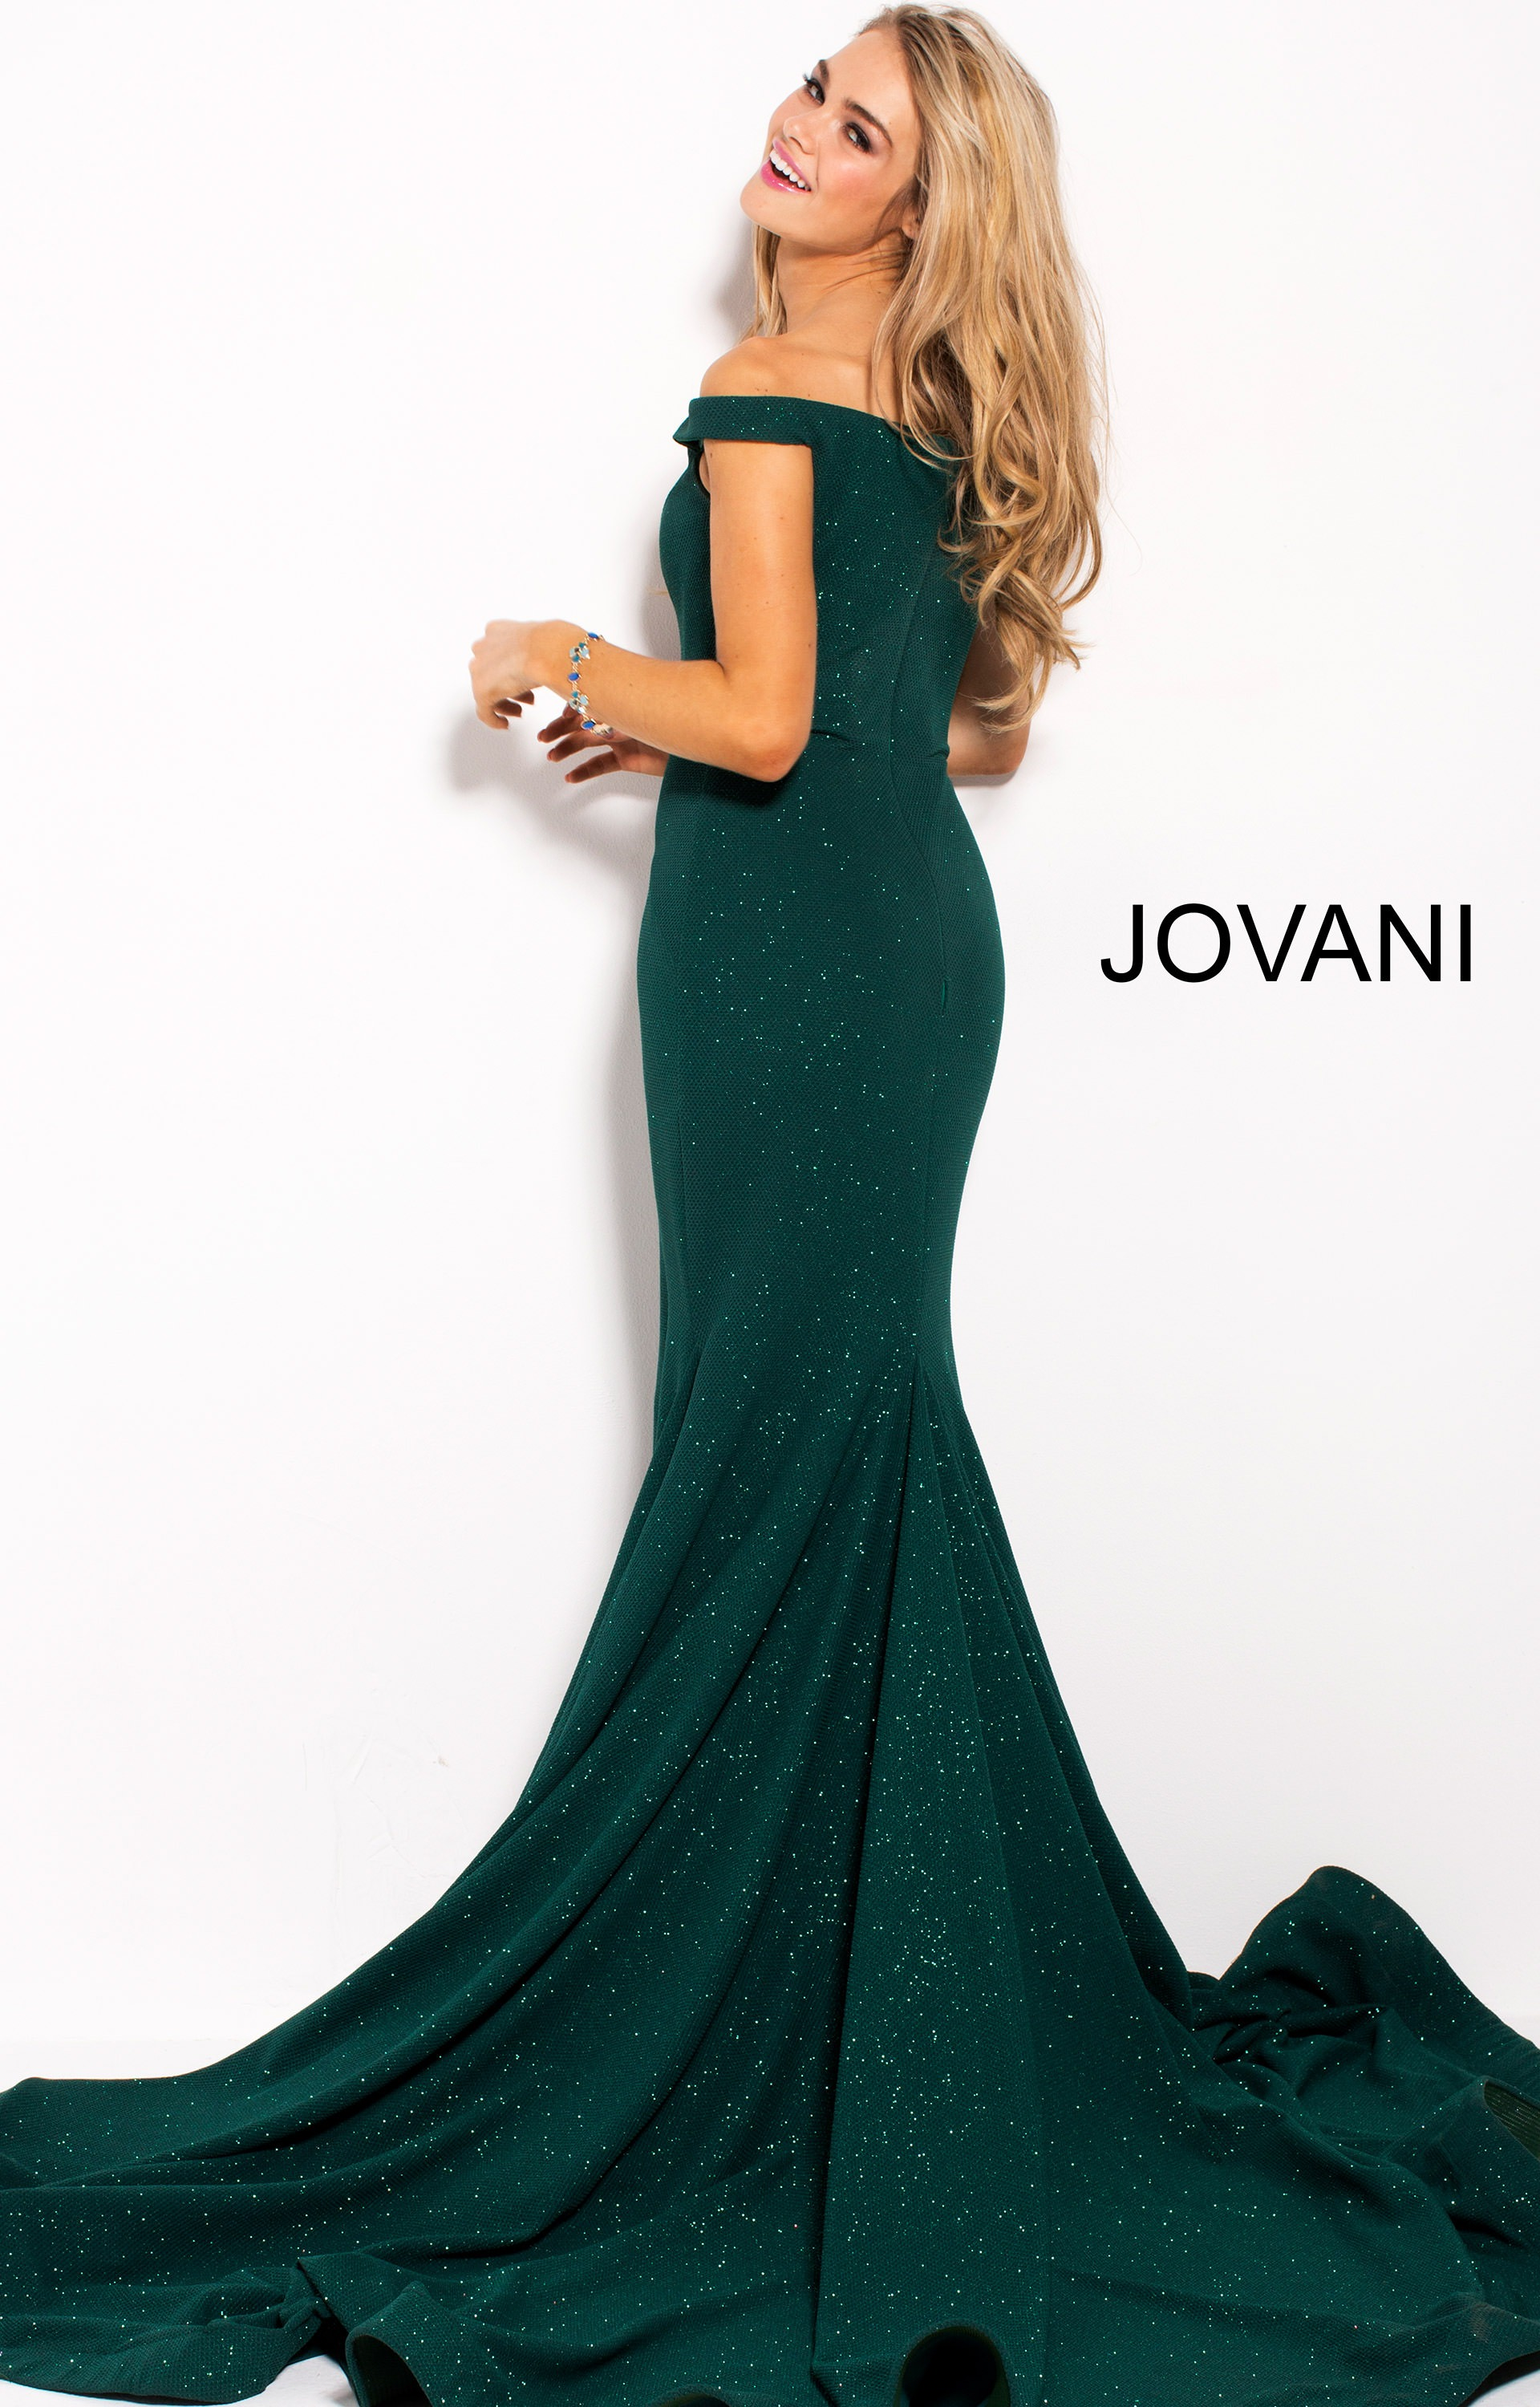 Jovani 55187 Fitted Glittery Dress With Sweetheart